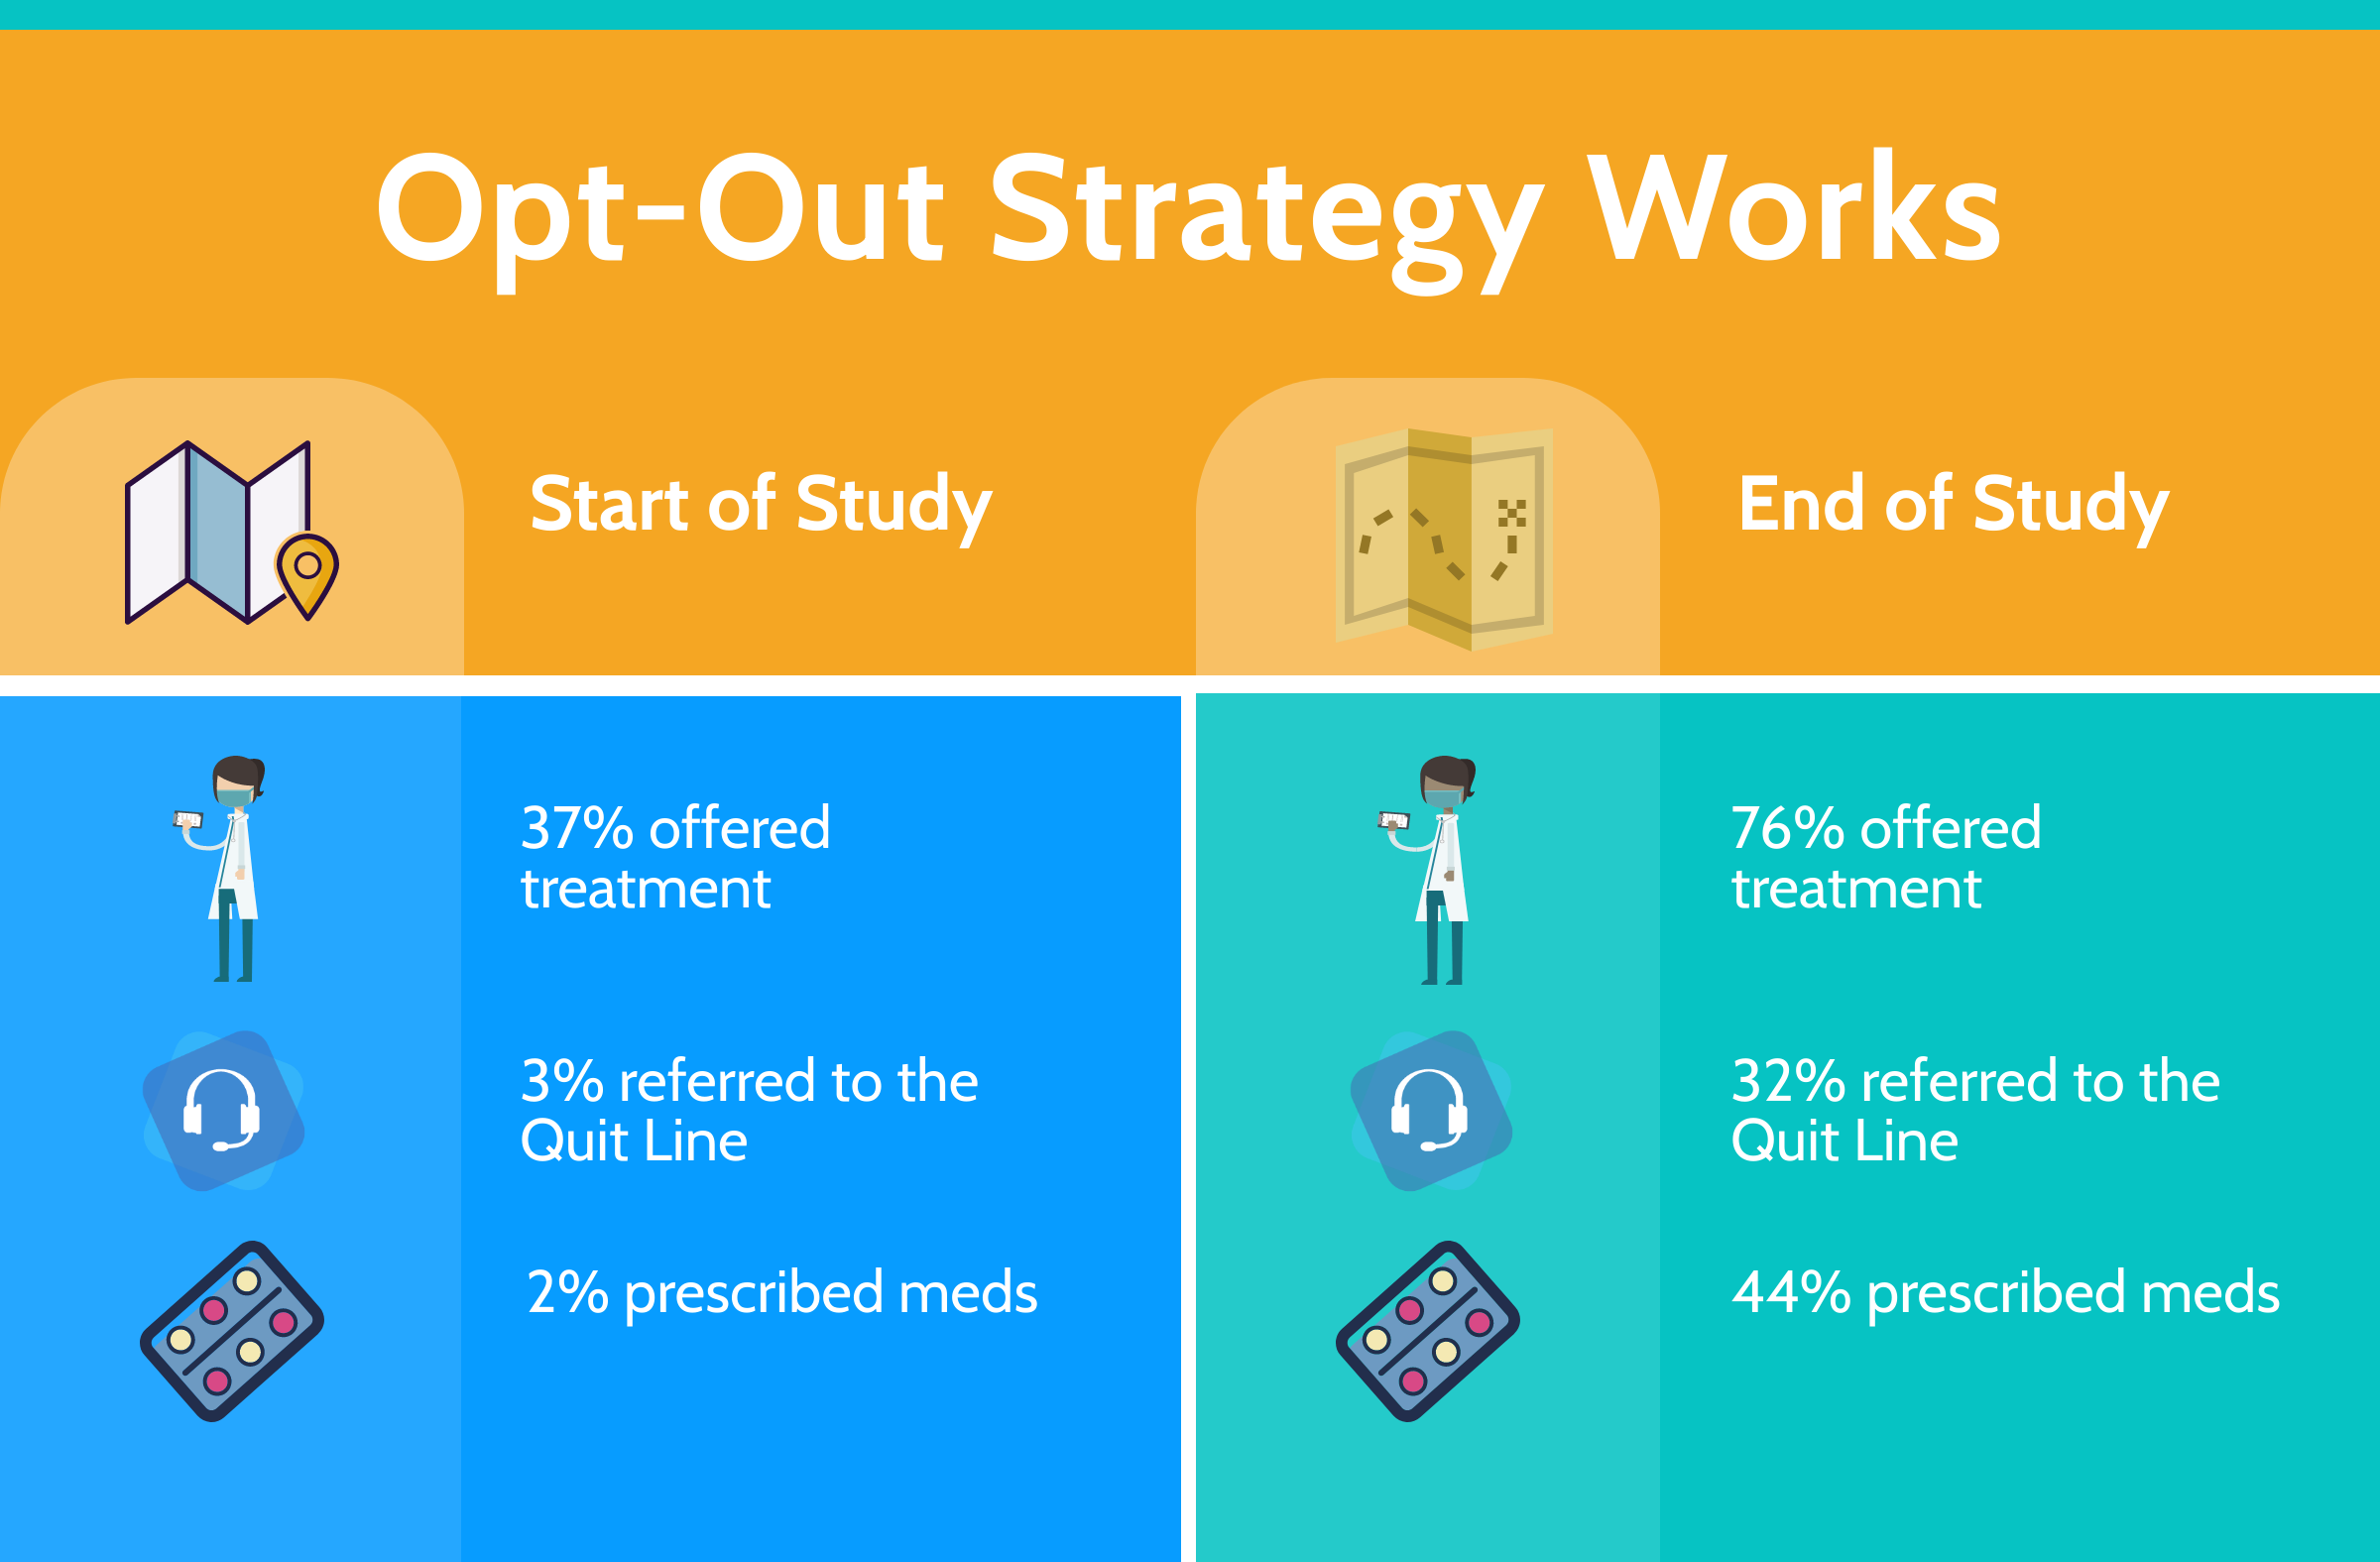 opt-out strategy works